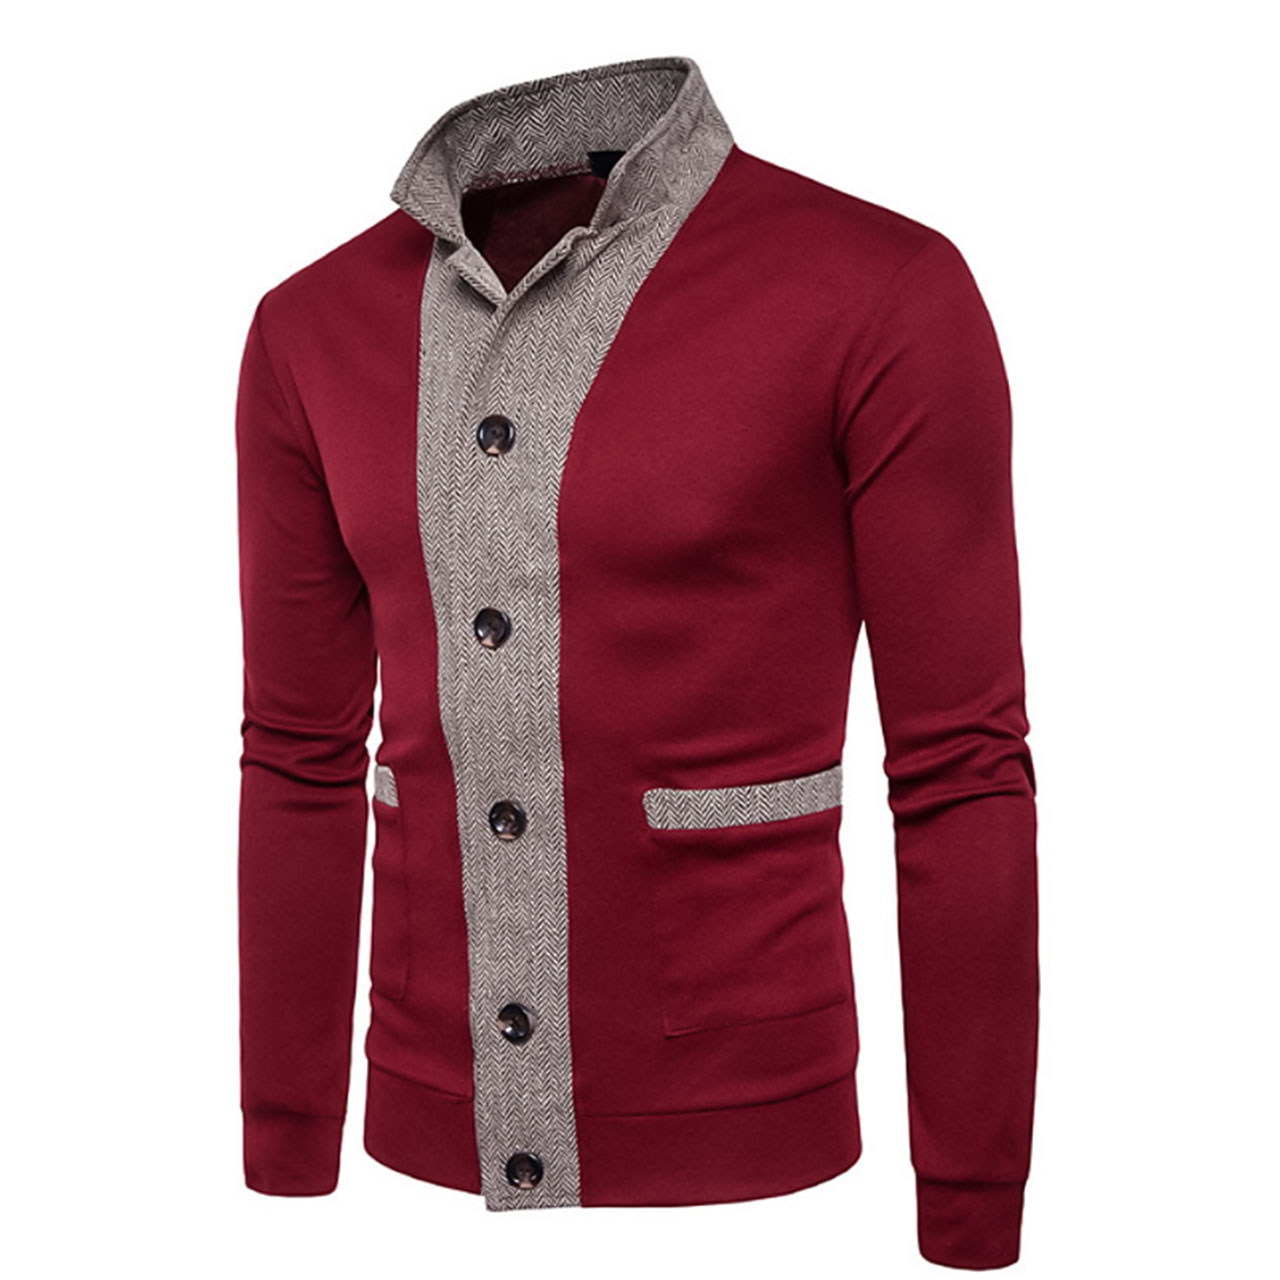 Men's Denim Wine/Black Daily Block Long Sleeve Regular Cardigan Sweater Jumper